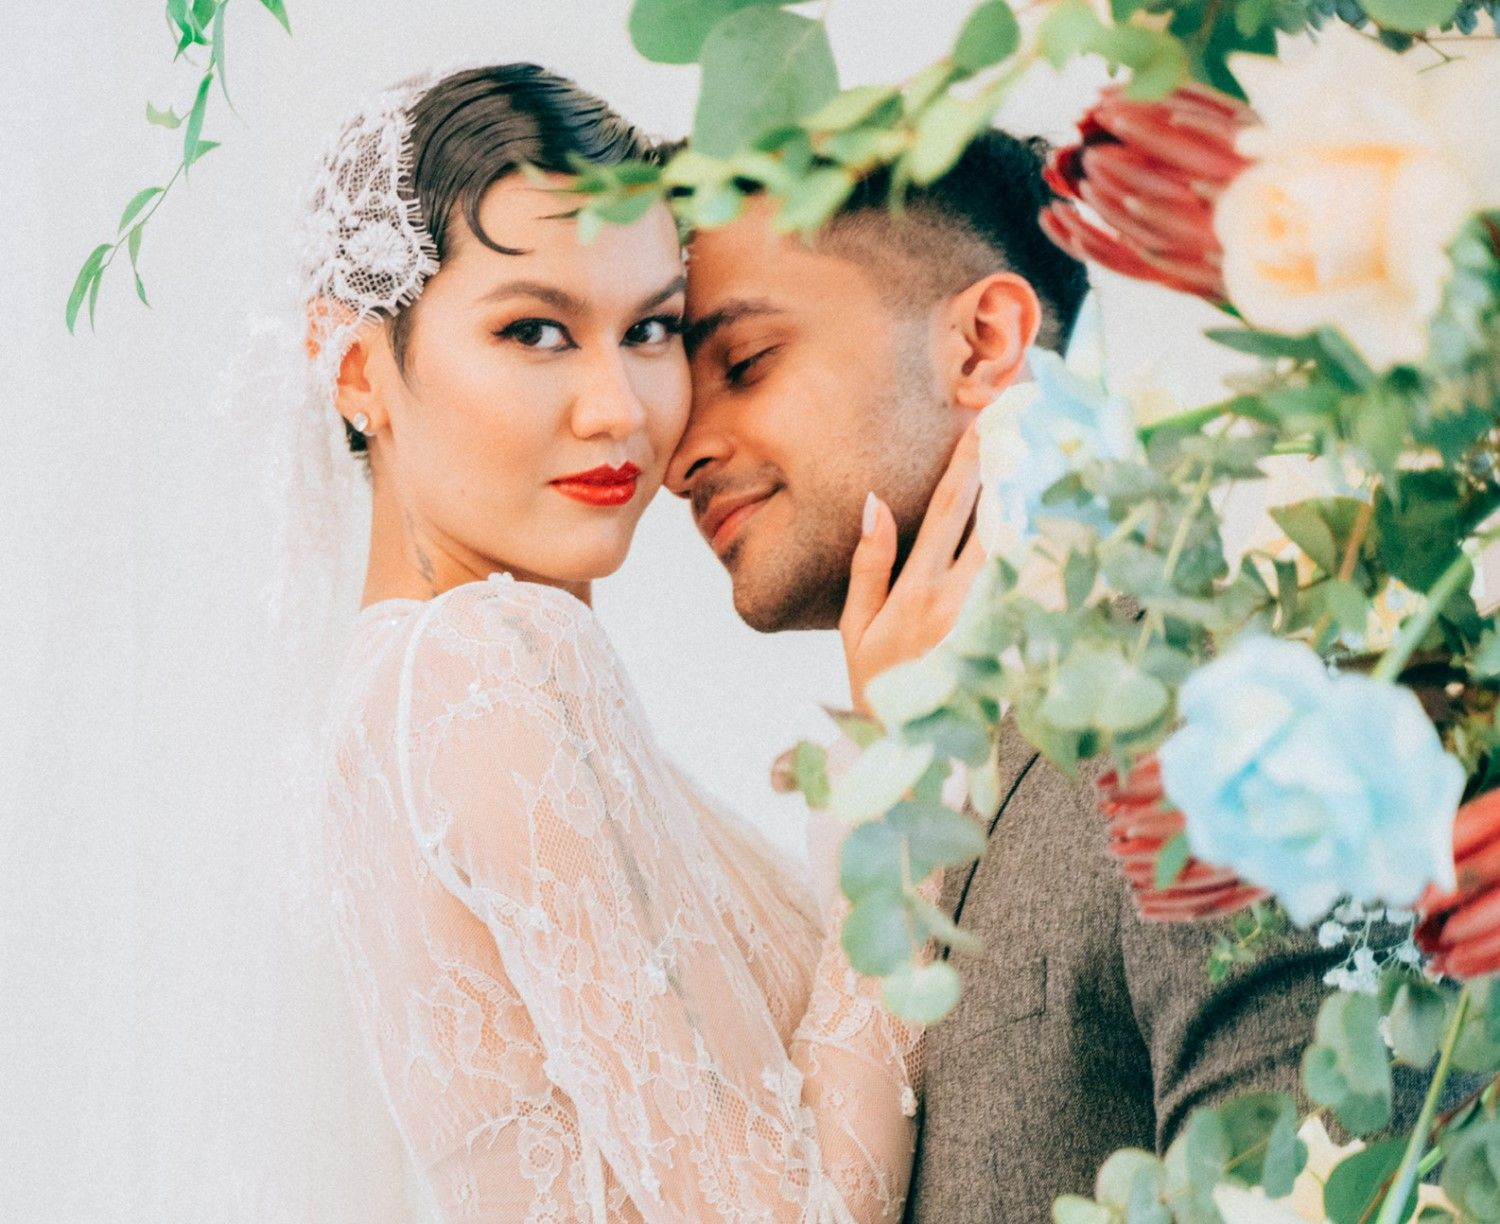 Alicia Amin & Farzan Iqbal Tie The Knot On Valentine's Day 2021